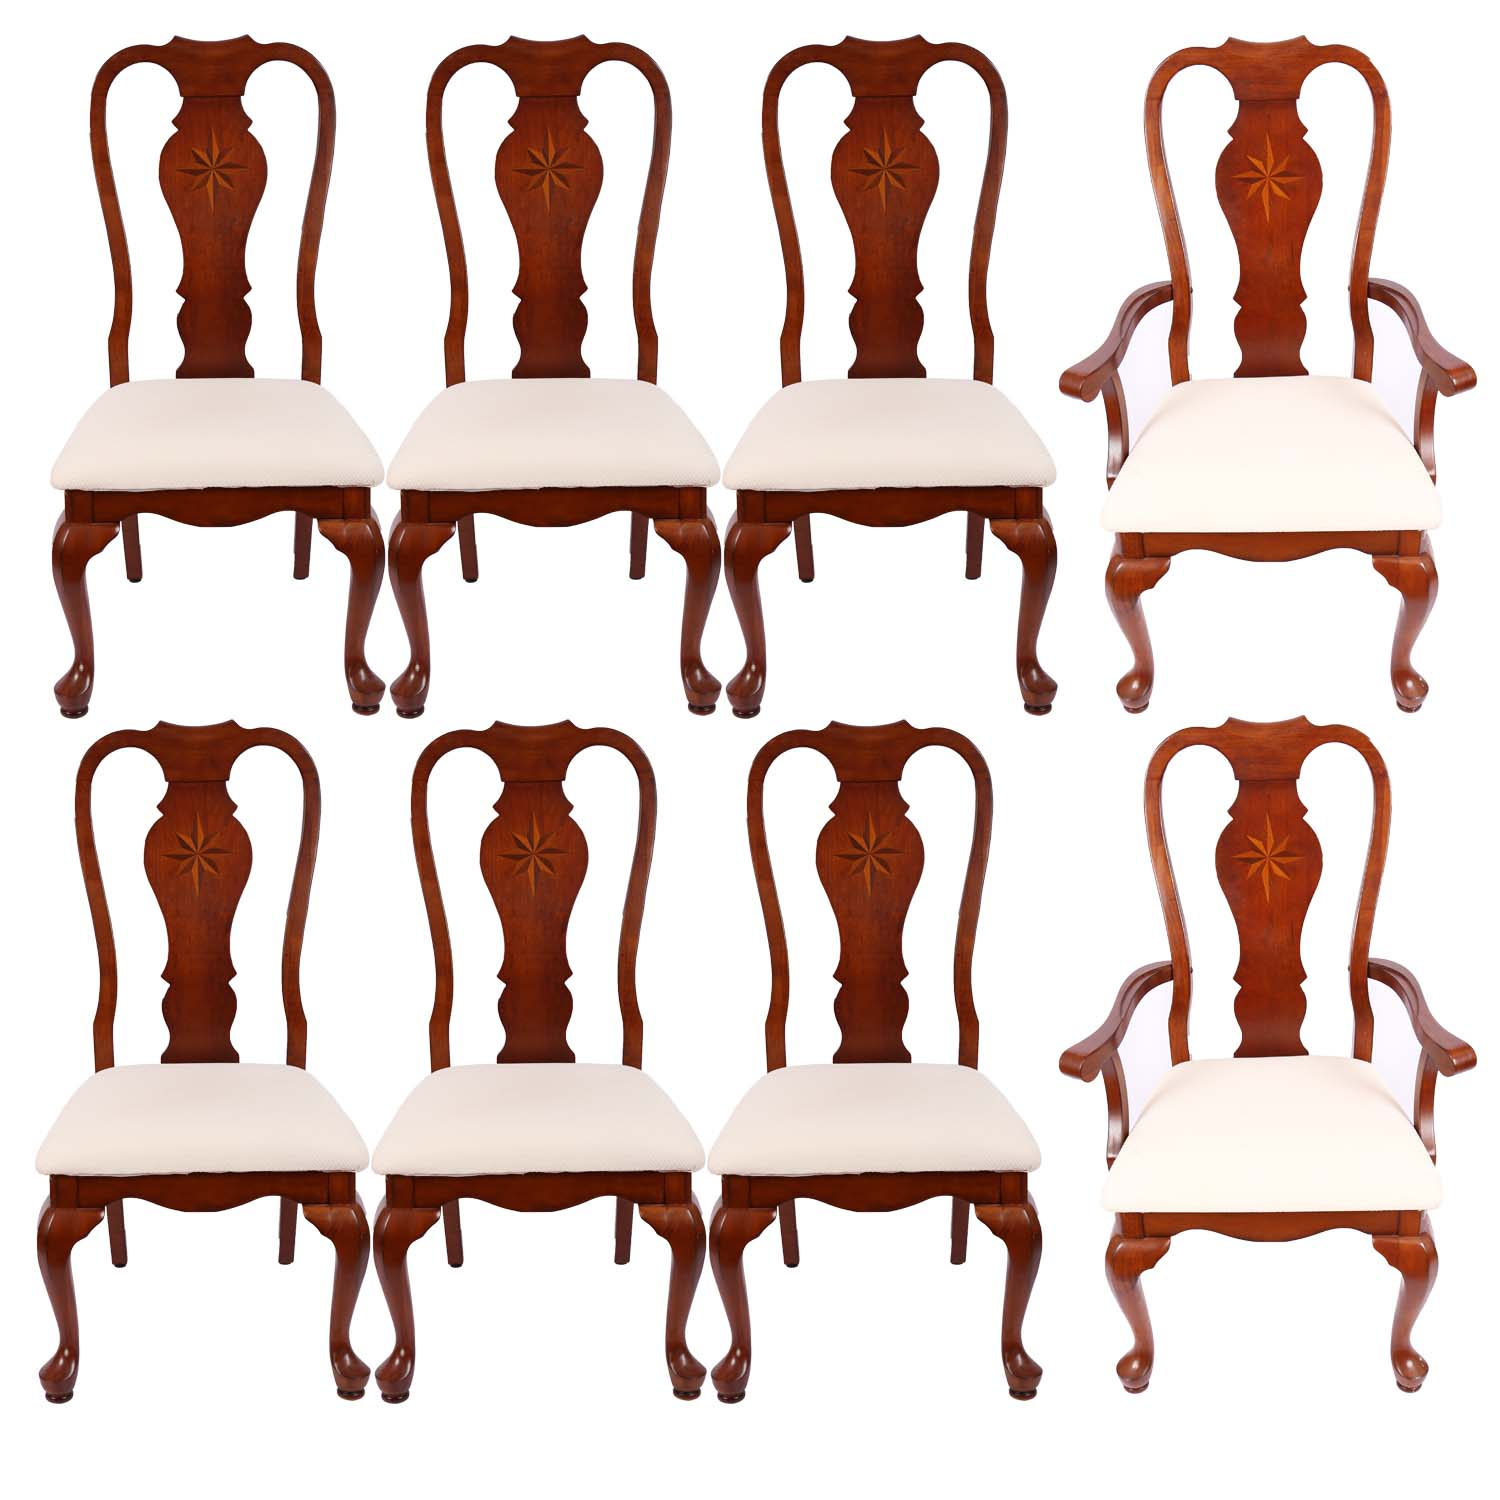 dining chair clipart. green river wood queen anne dining chairs chair clipart